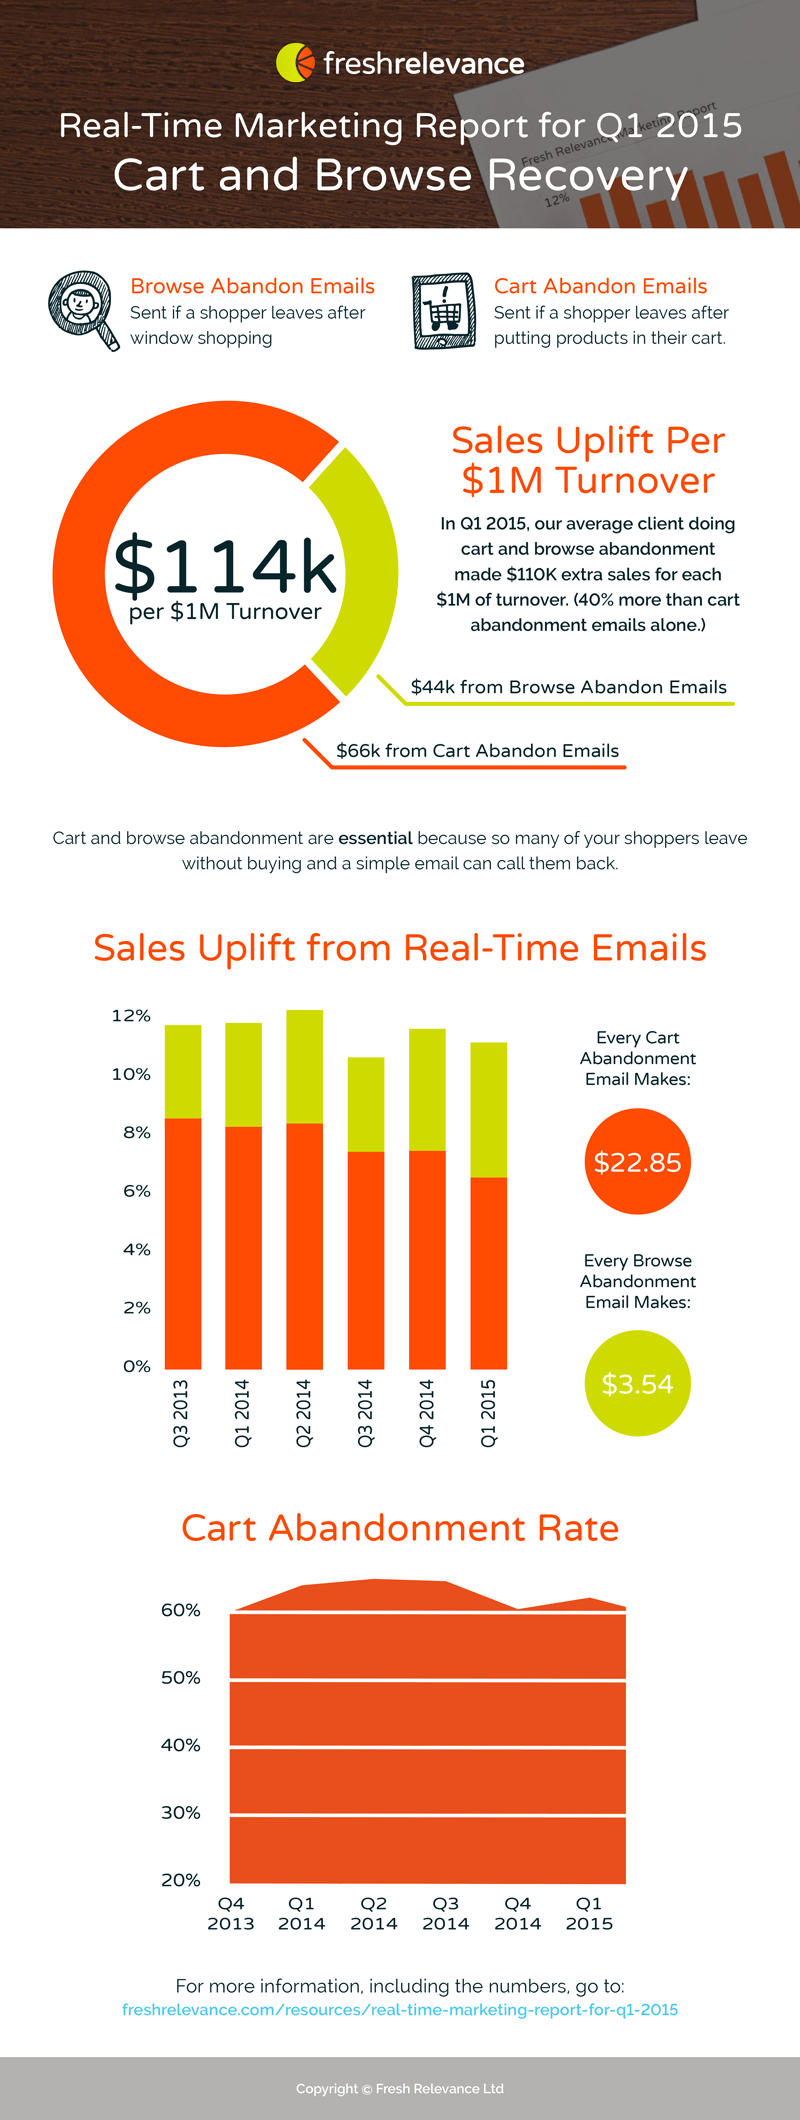 Real-Time Marketing Report for Q1 2015